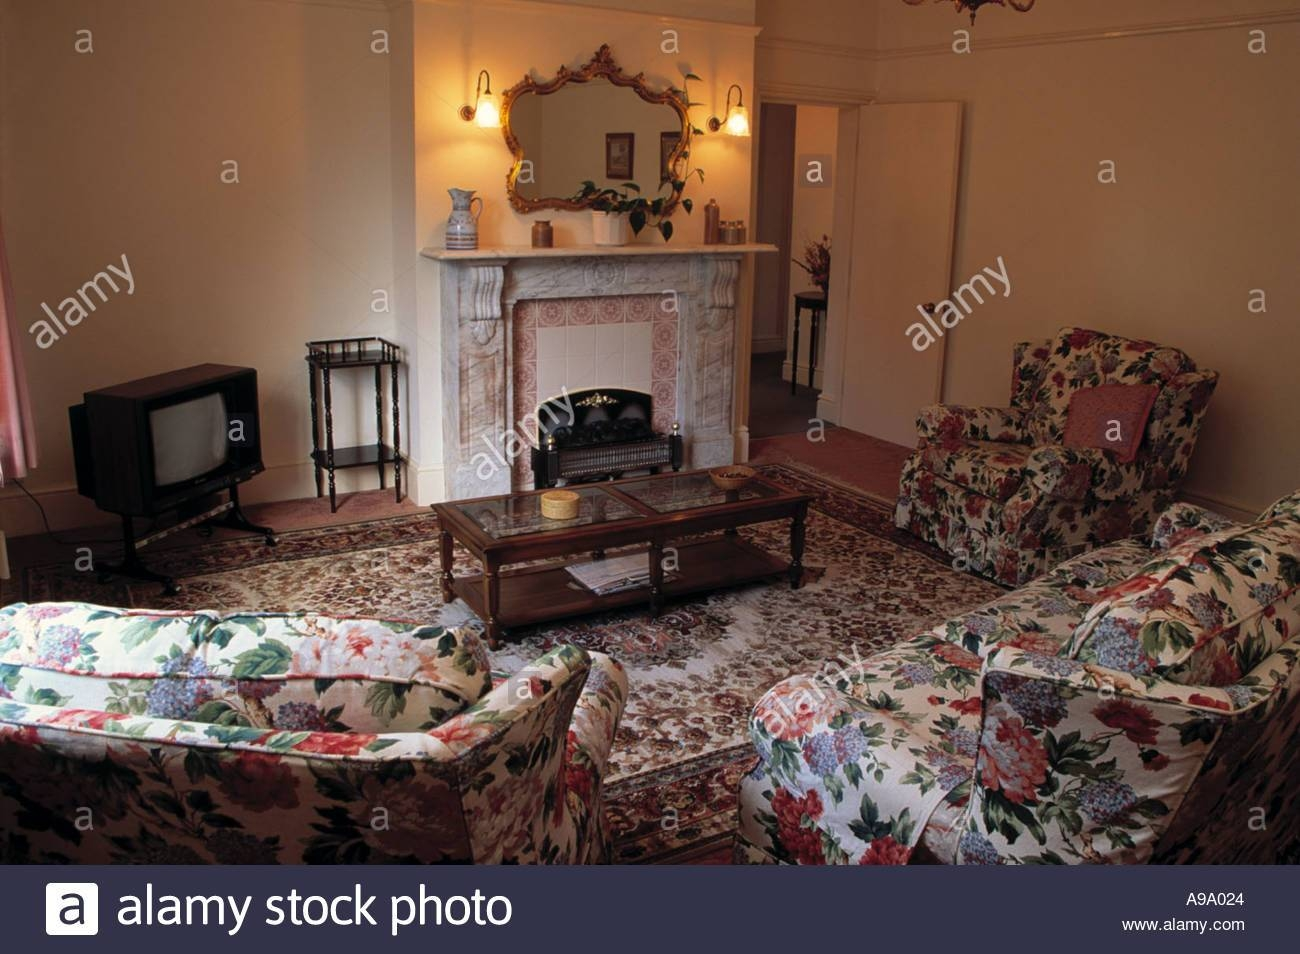 Chintz Sofa And Armchairs In Dated Living Room With Television In with regard to Chintz Floral Sofas (Image 17 of 30)